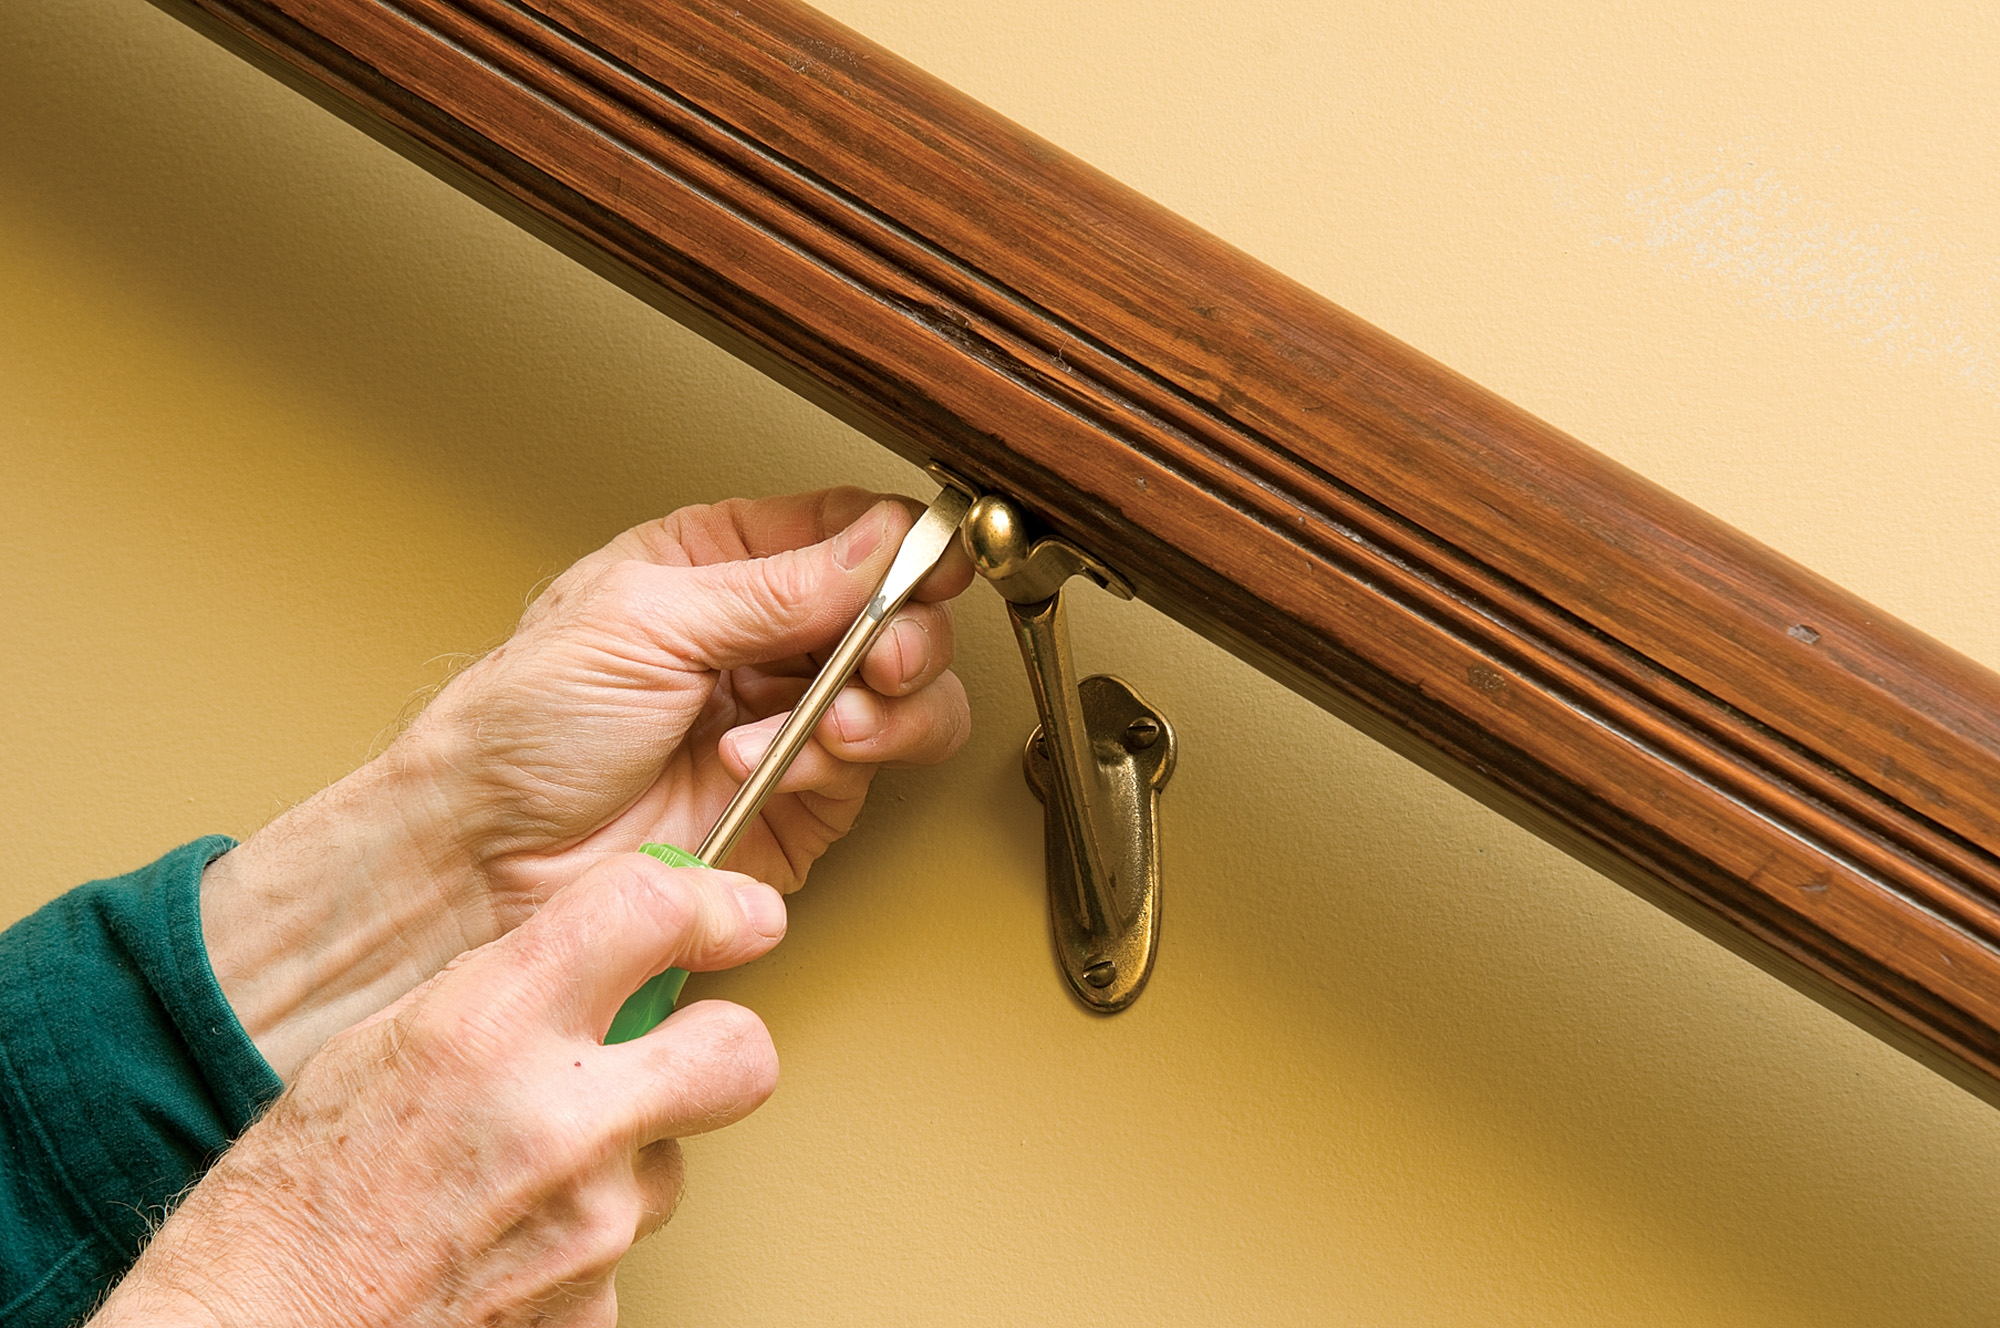 How To Hang A Stair Rail Old House Journal Magazine | Attaching Handrail To Wall | Stair Parts | Brick | Wood | Staircase | Scr*W